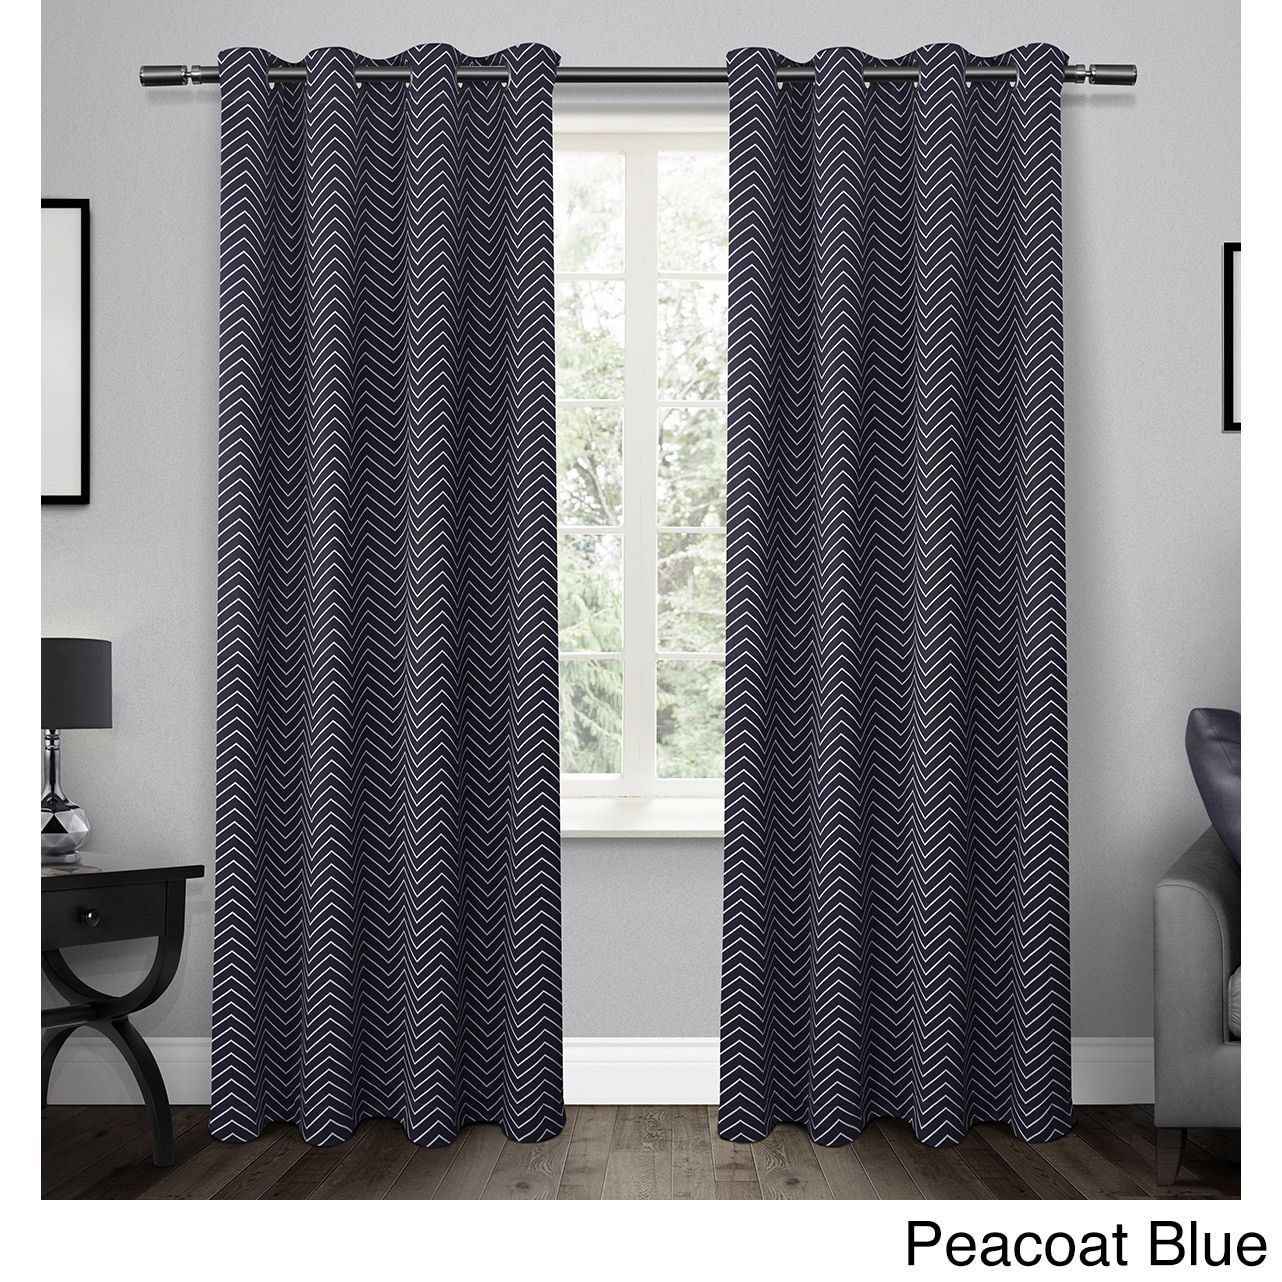 Ati Home Chevron Thermal Woven Blackout Grommet Top Curtain With Regard To Chevron Blackout Grommet Curtain Panels (View 3 of 20)